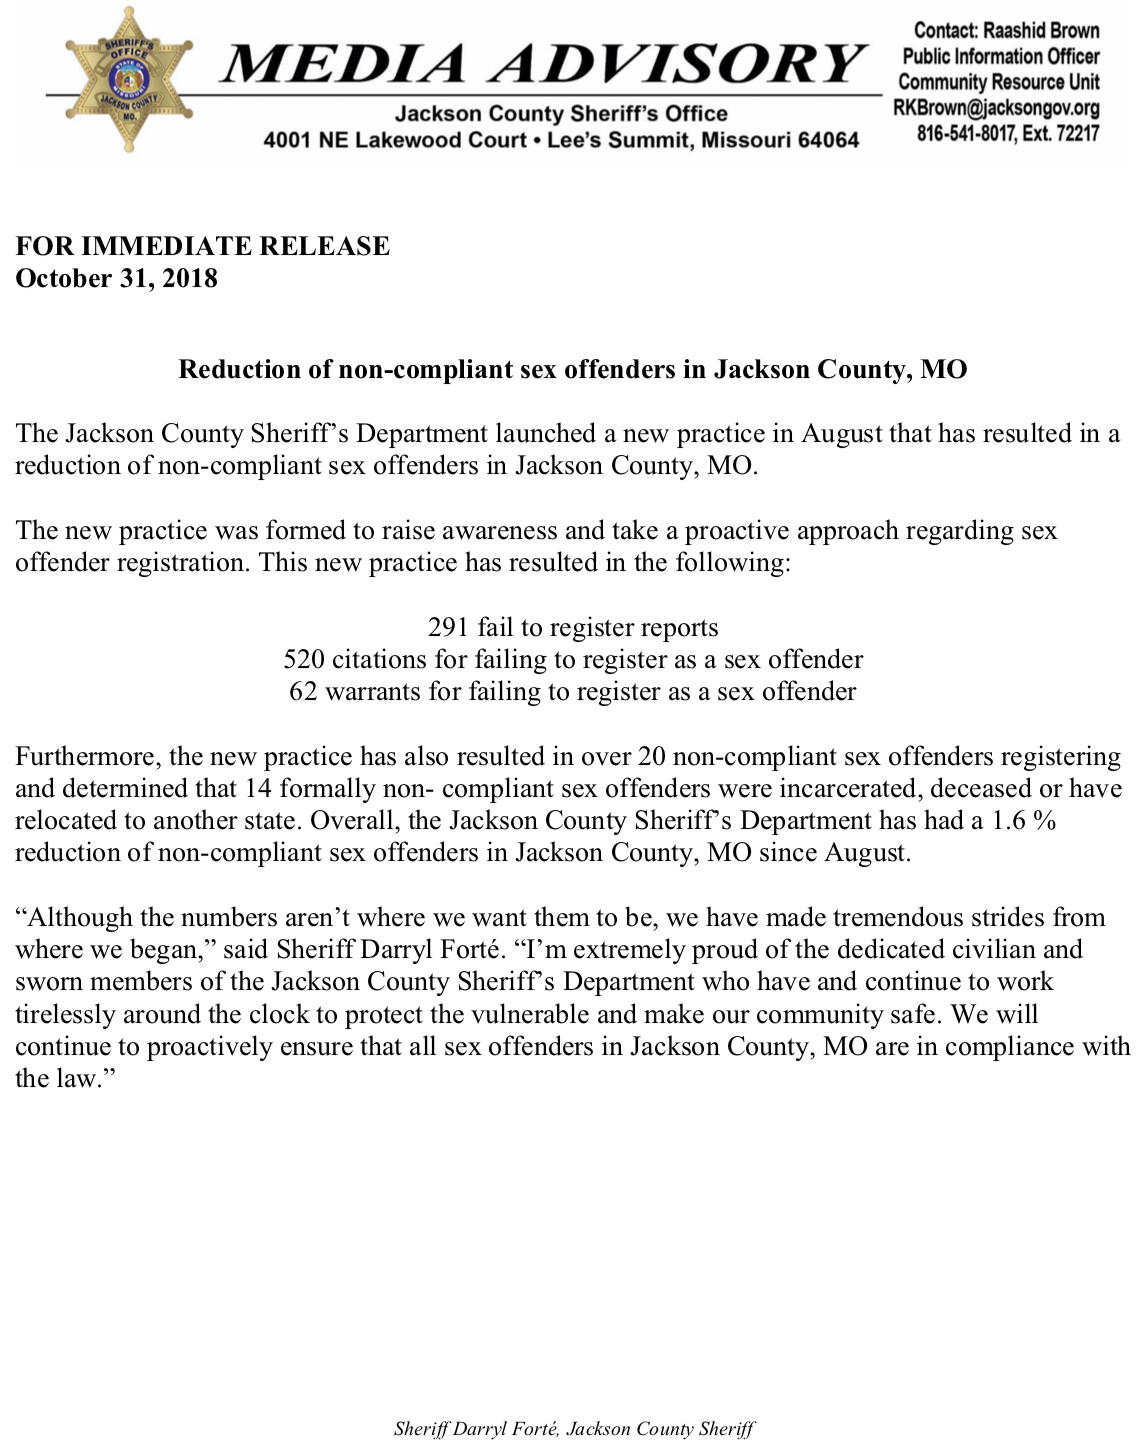 Reduction of non-compliant sex offenders (Jackson County Sheriff's Office)  | Nextdoor